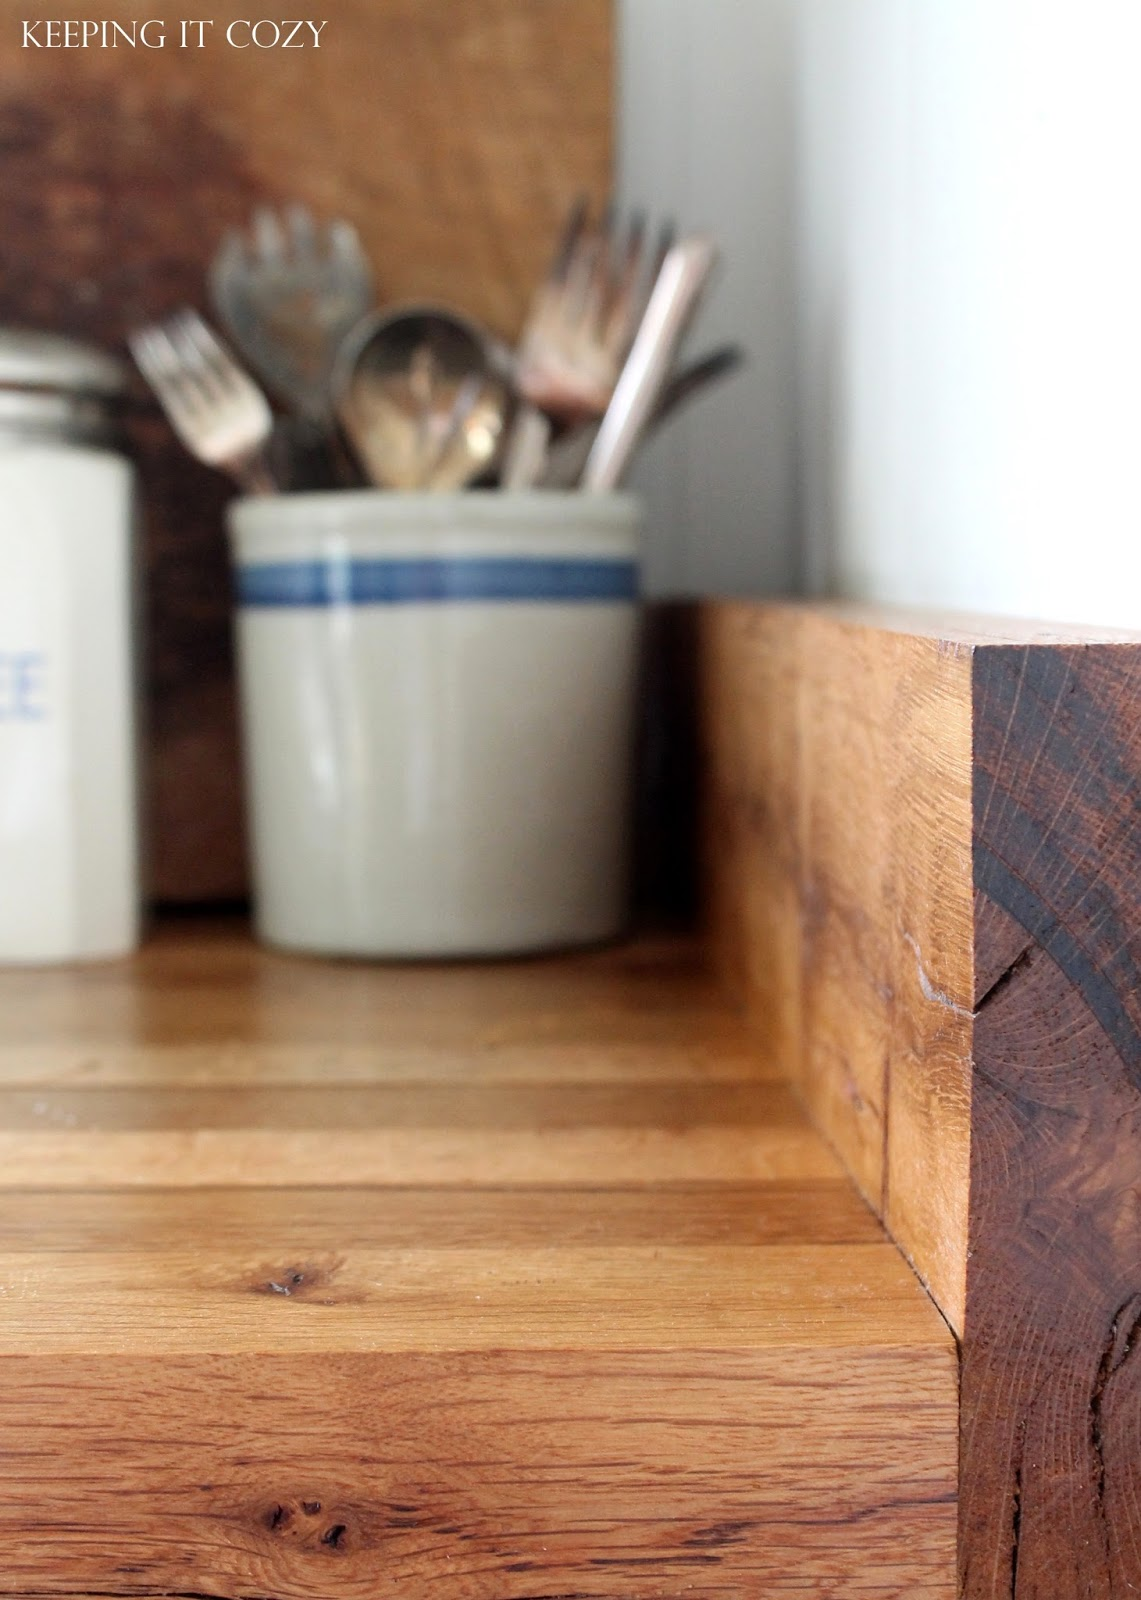 Best Wood For Butcher Block Counters: Keeping It Cozy: All About Butcher Block Countertops